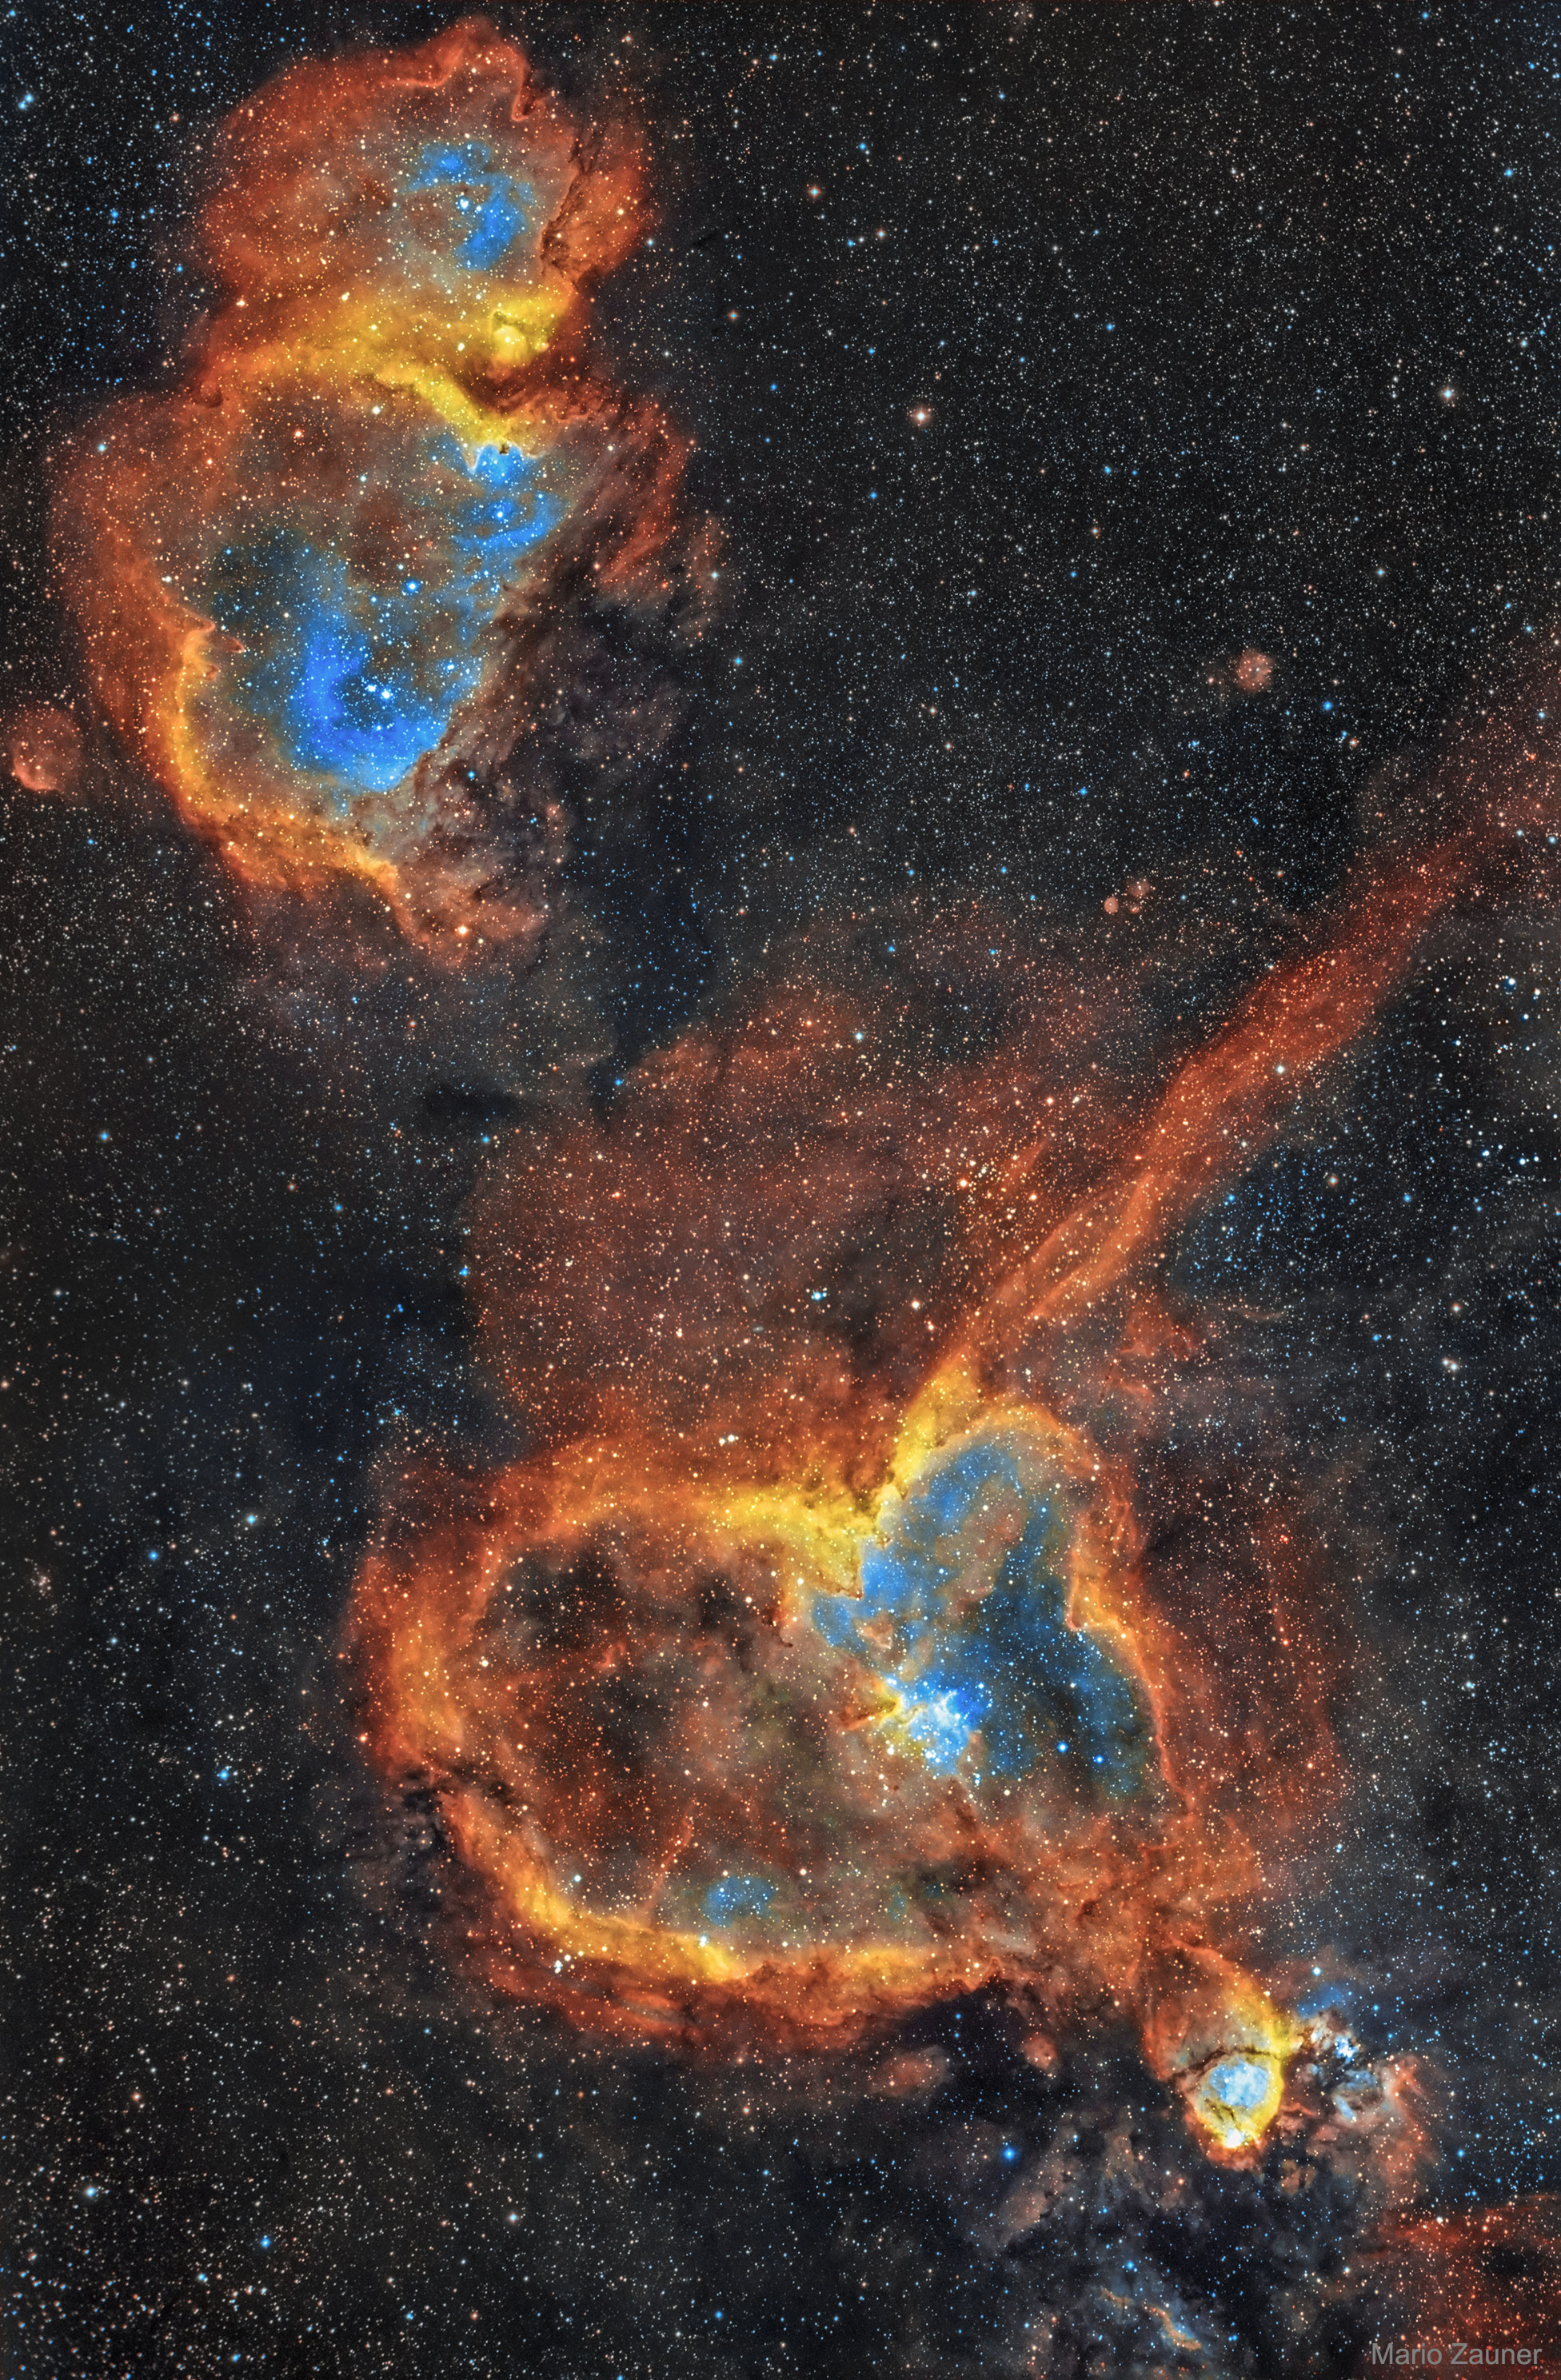 2019 January 15 - The Heart and Soul Nebulas